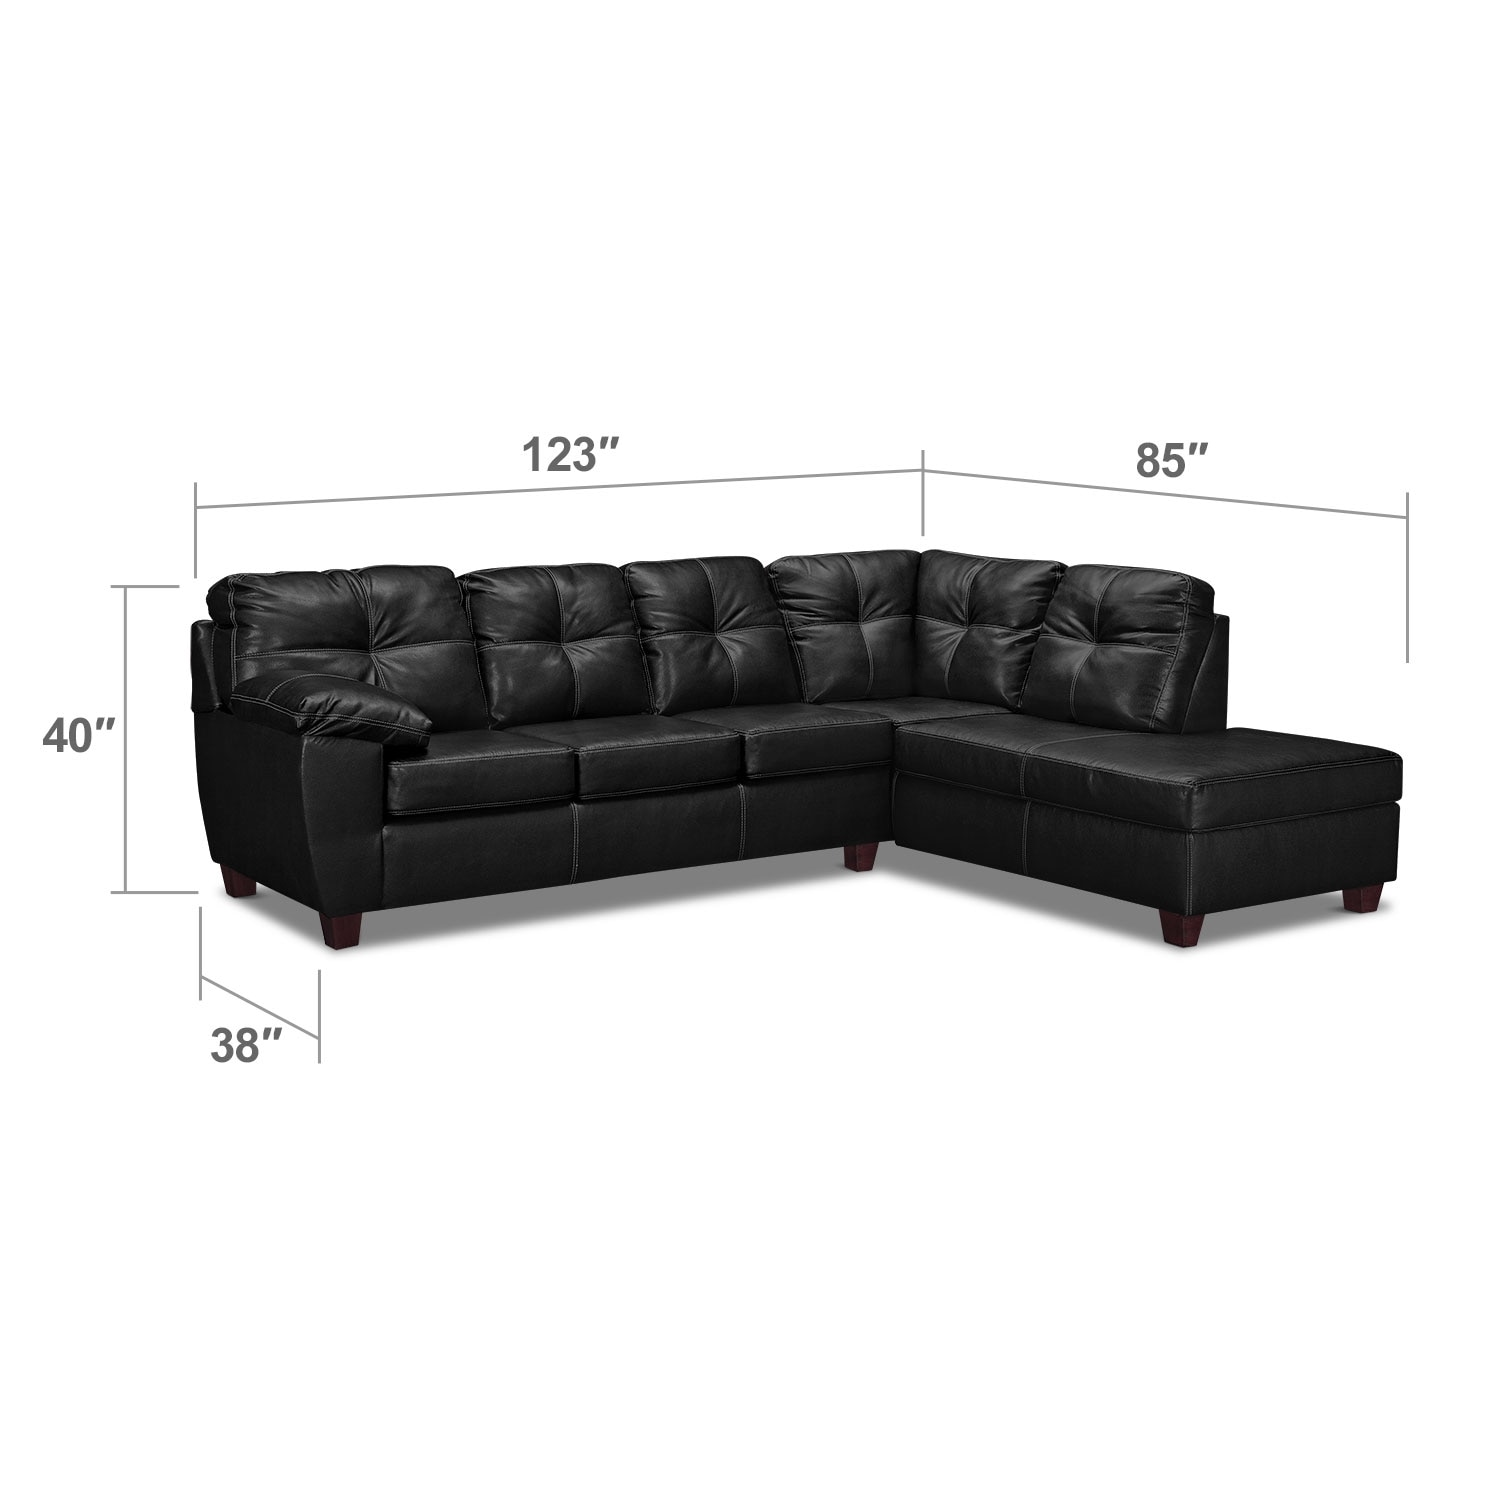 Living Room Furniture - Rialto Onyx 2-Pc. Sectional with Right-Facing Chaise